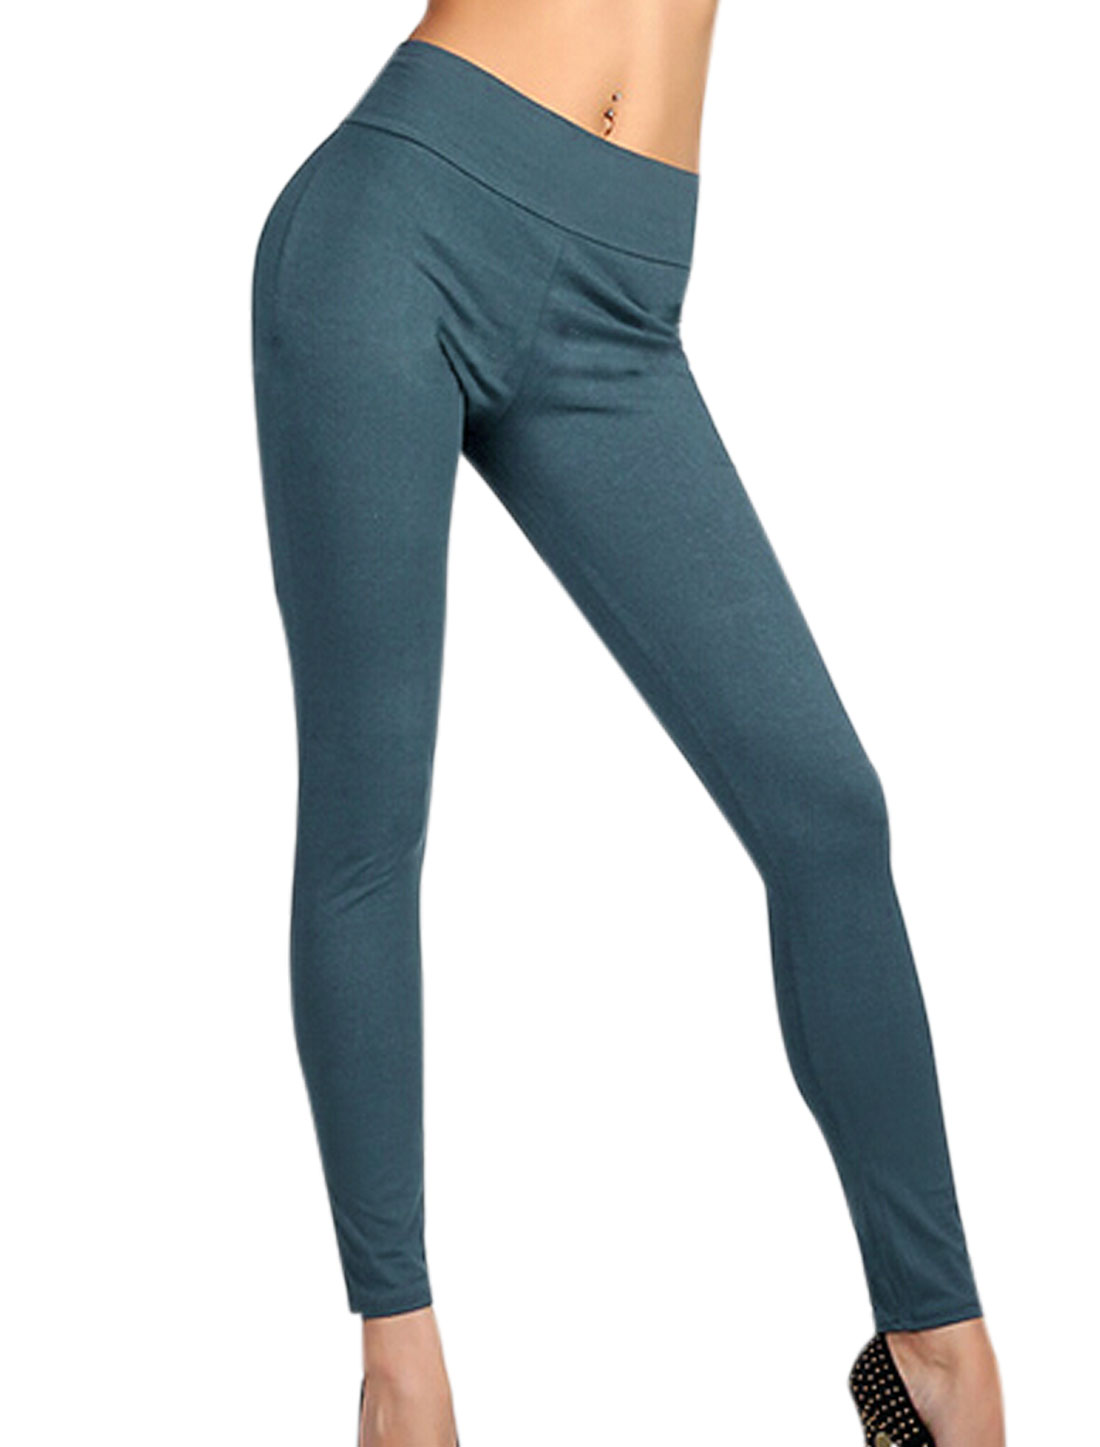 Stretchy Waist Zipper Back Casual Leggings for Women Steel Blue L